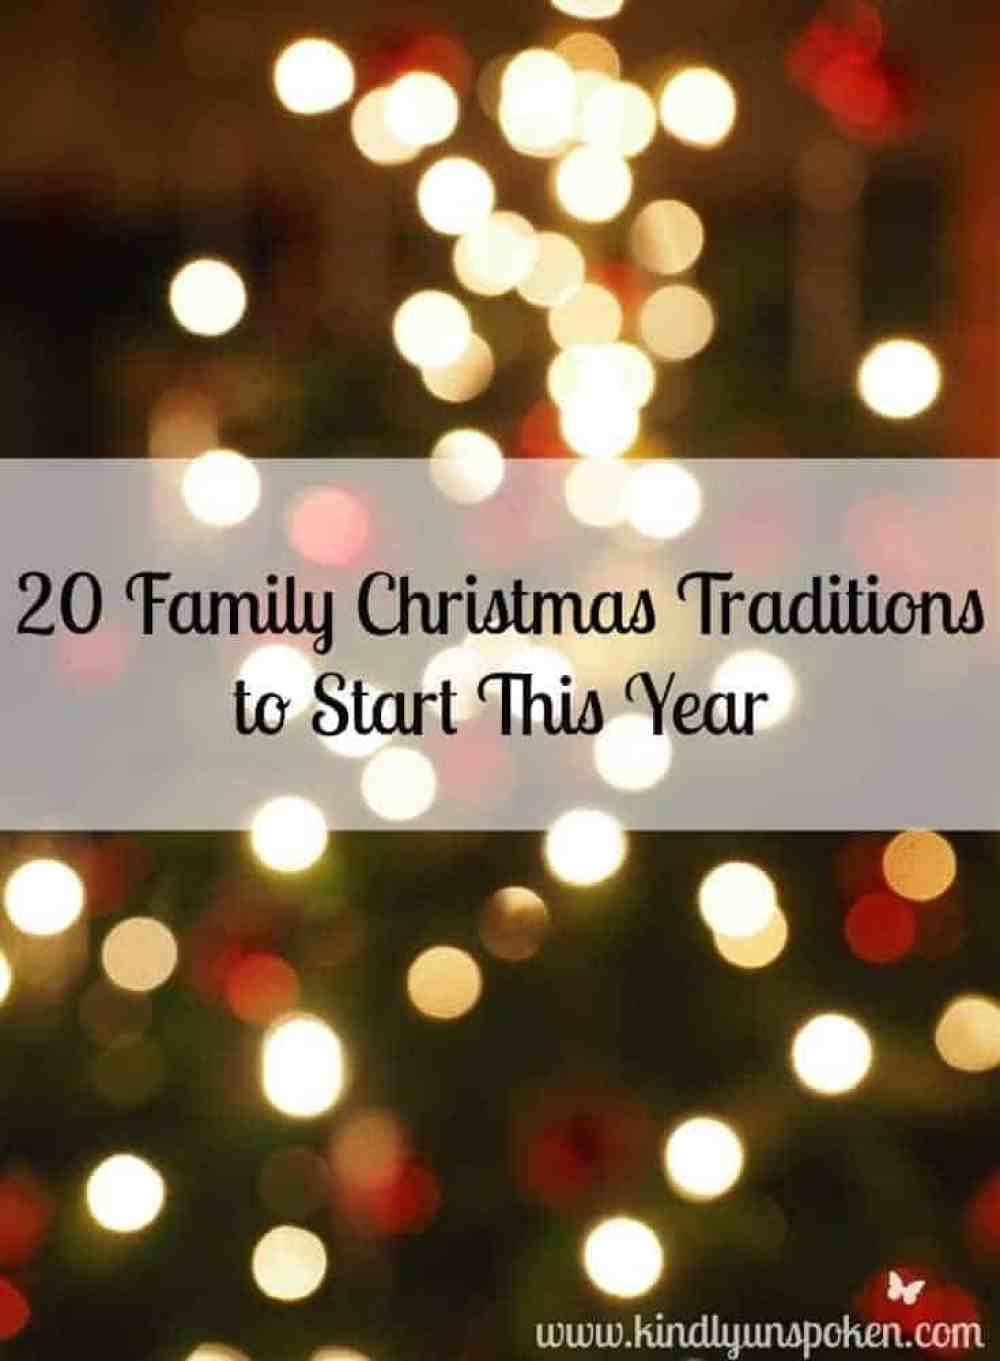 20 Family Christmas Traditions to Start This Year